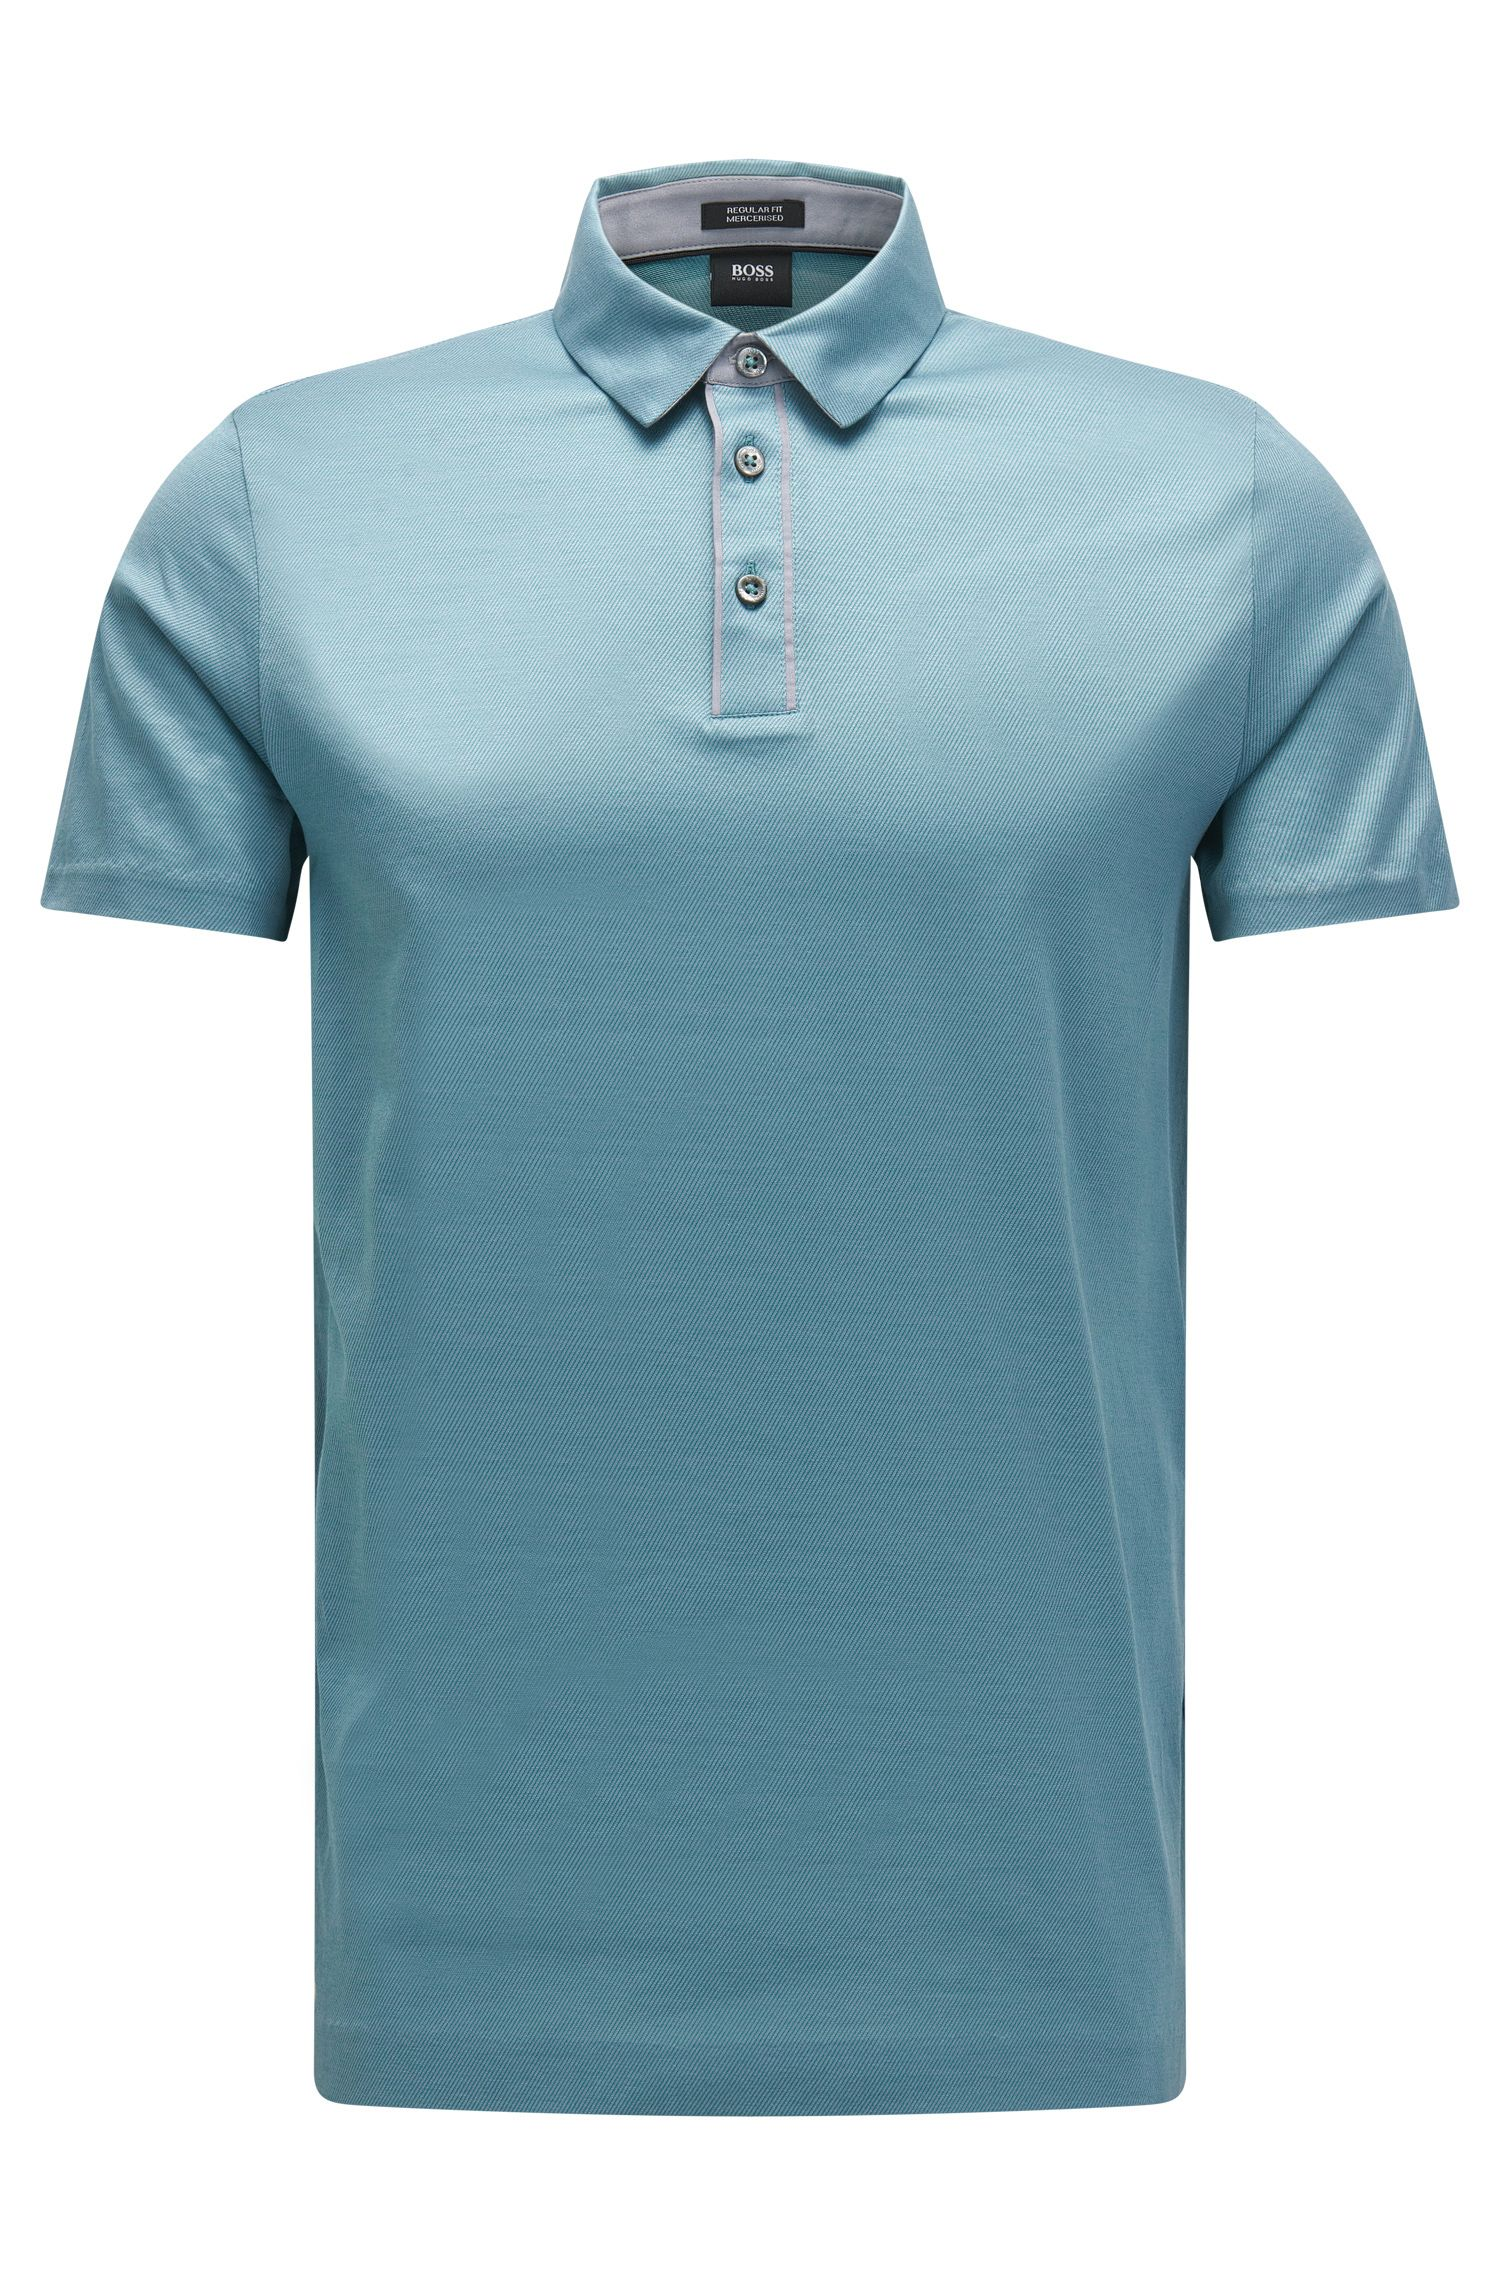 Mercerized Jacquard Cotton Polo Shirt, Regular Fit | Press